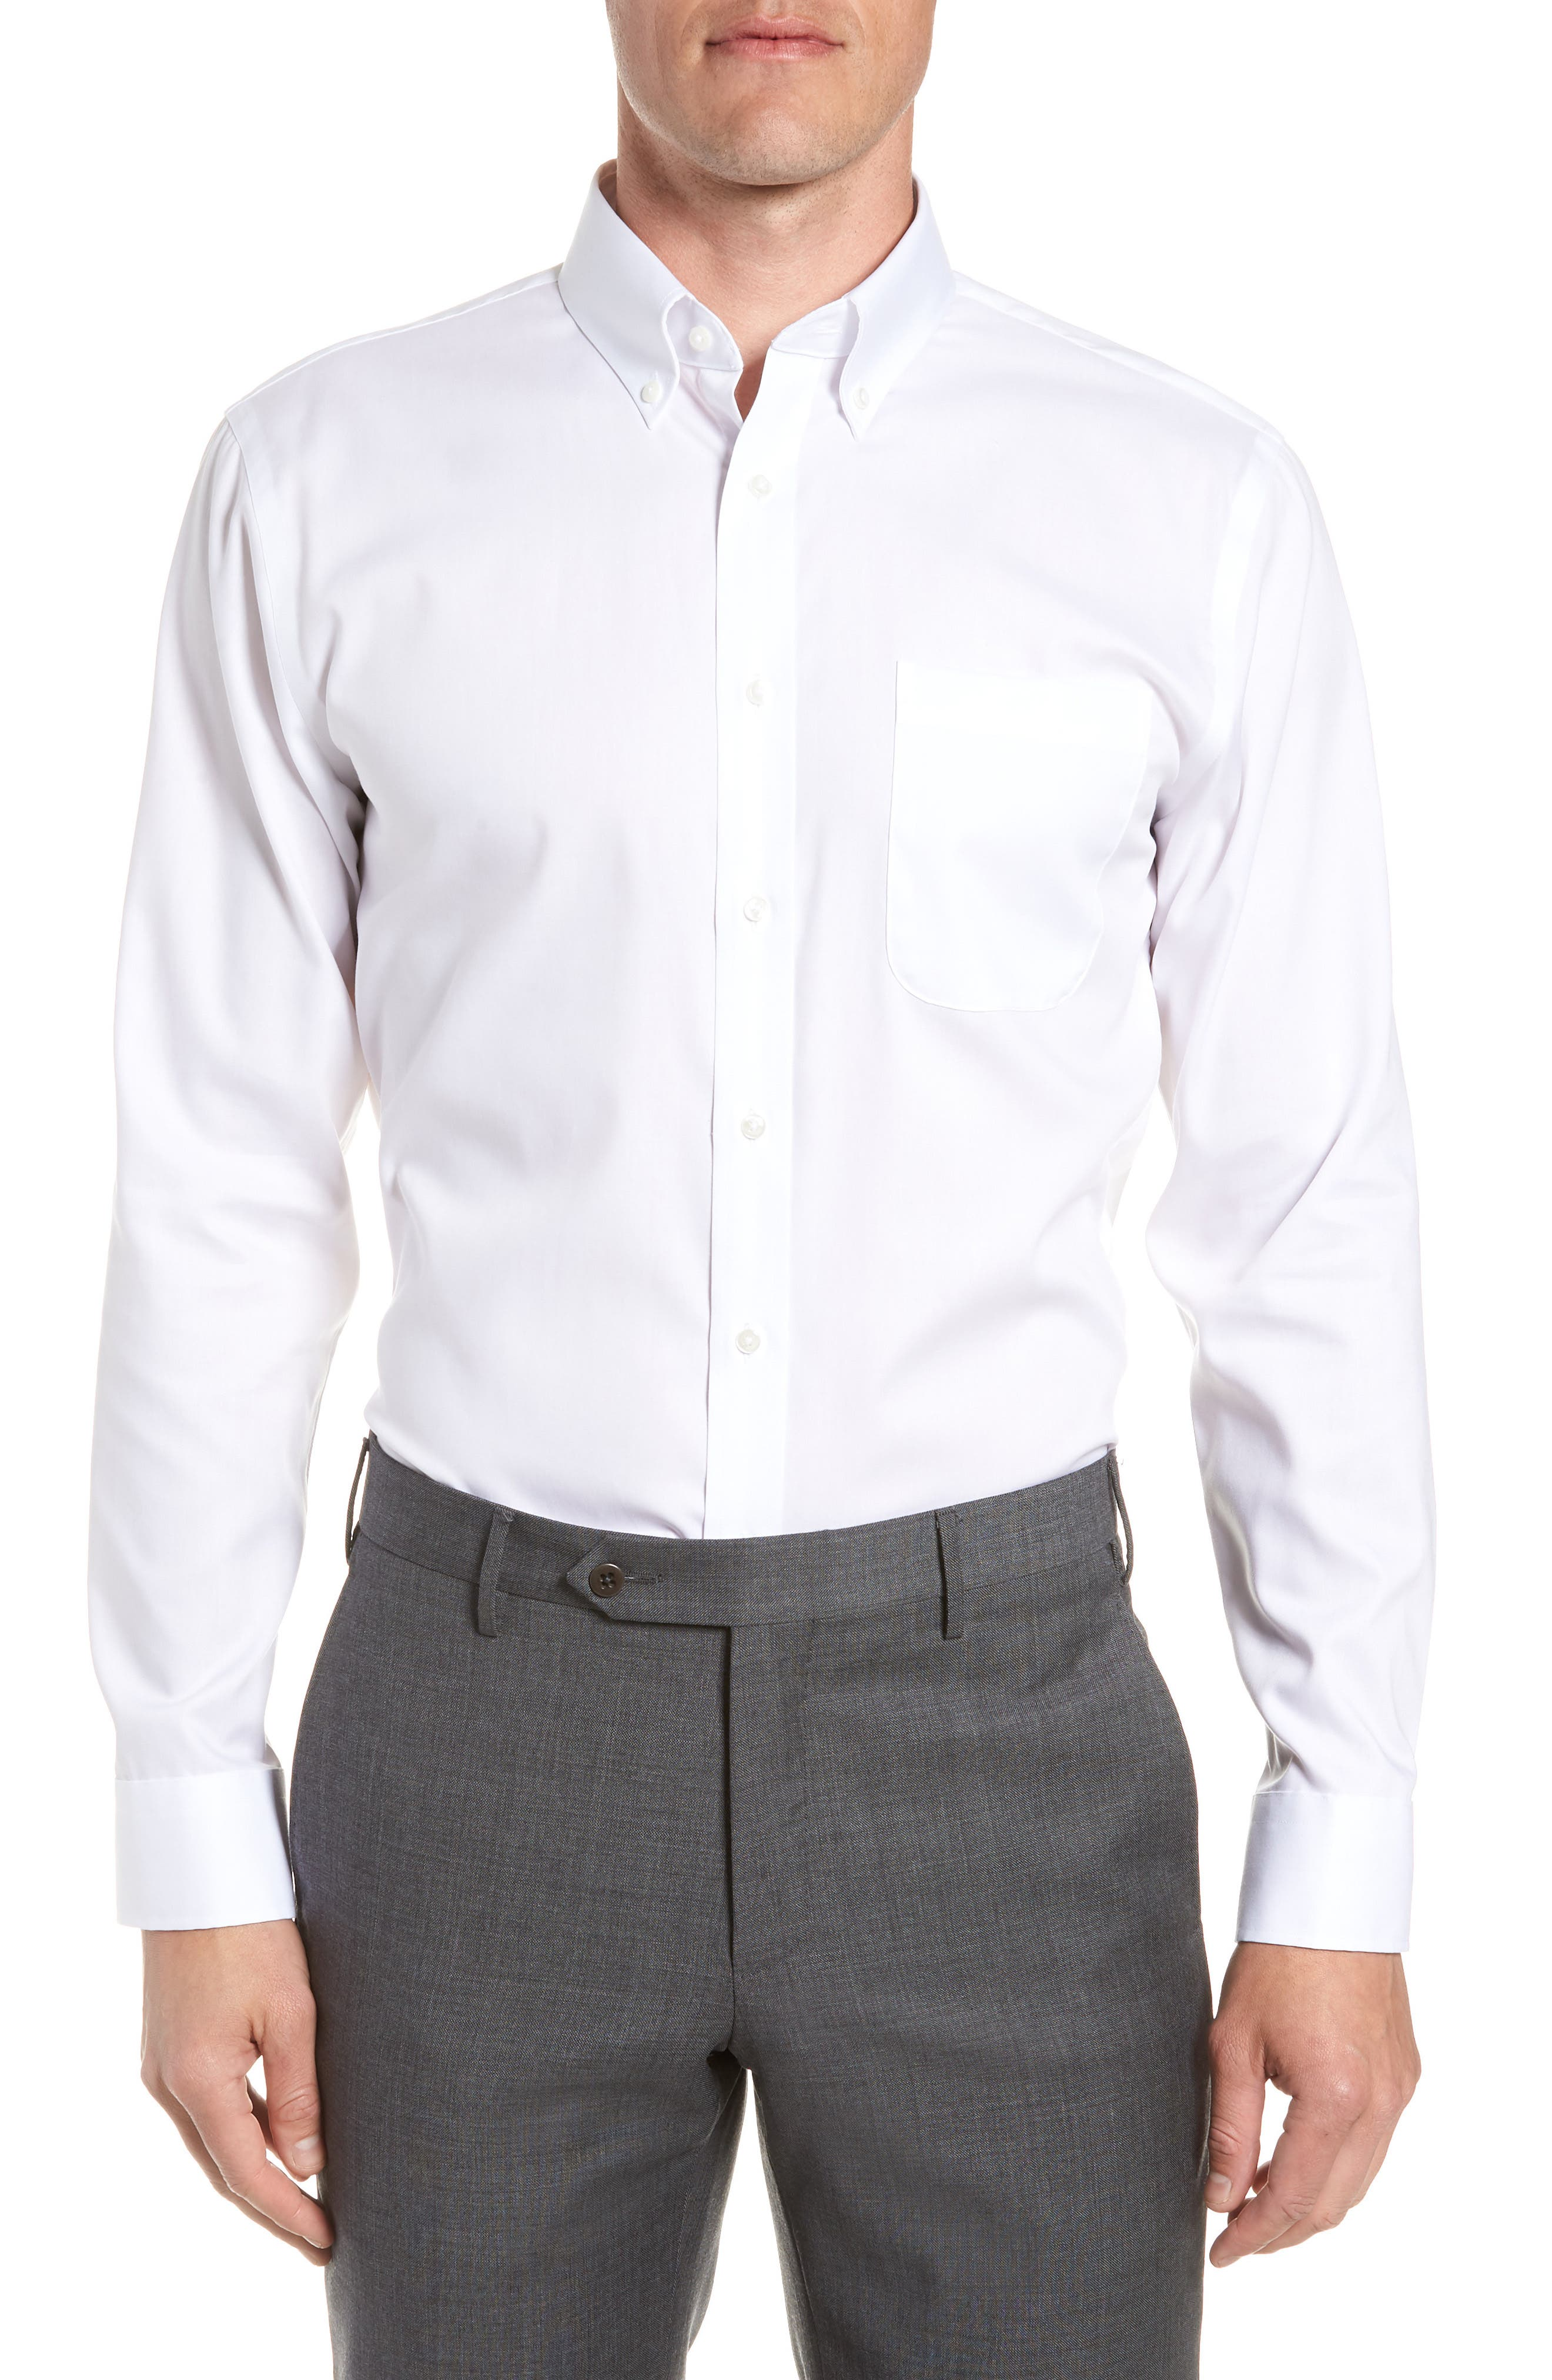 Trim Fit Non-Iron Dress Shirt,                         Main,                         color, White